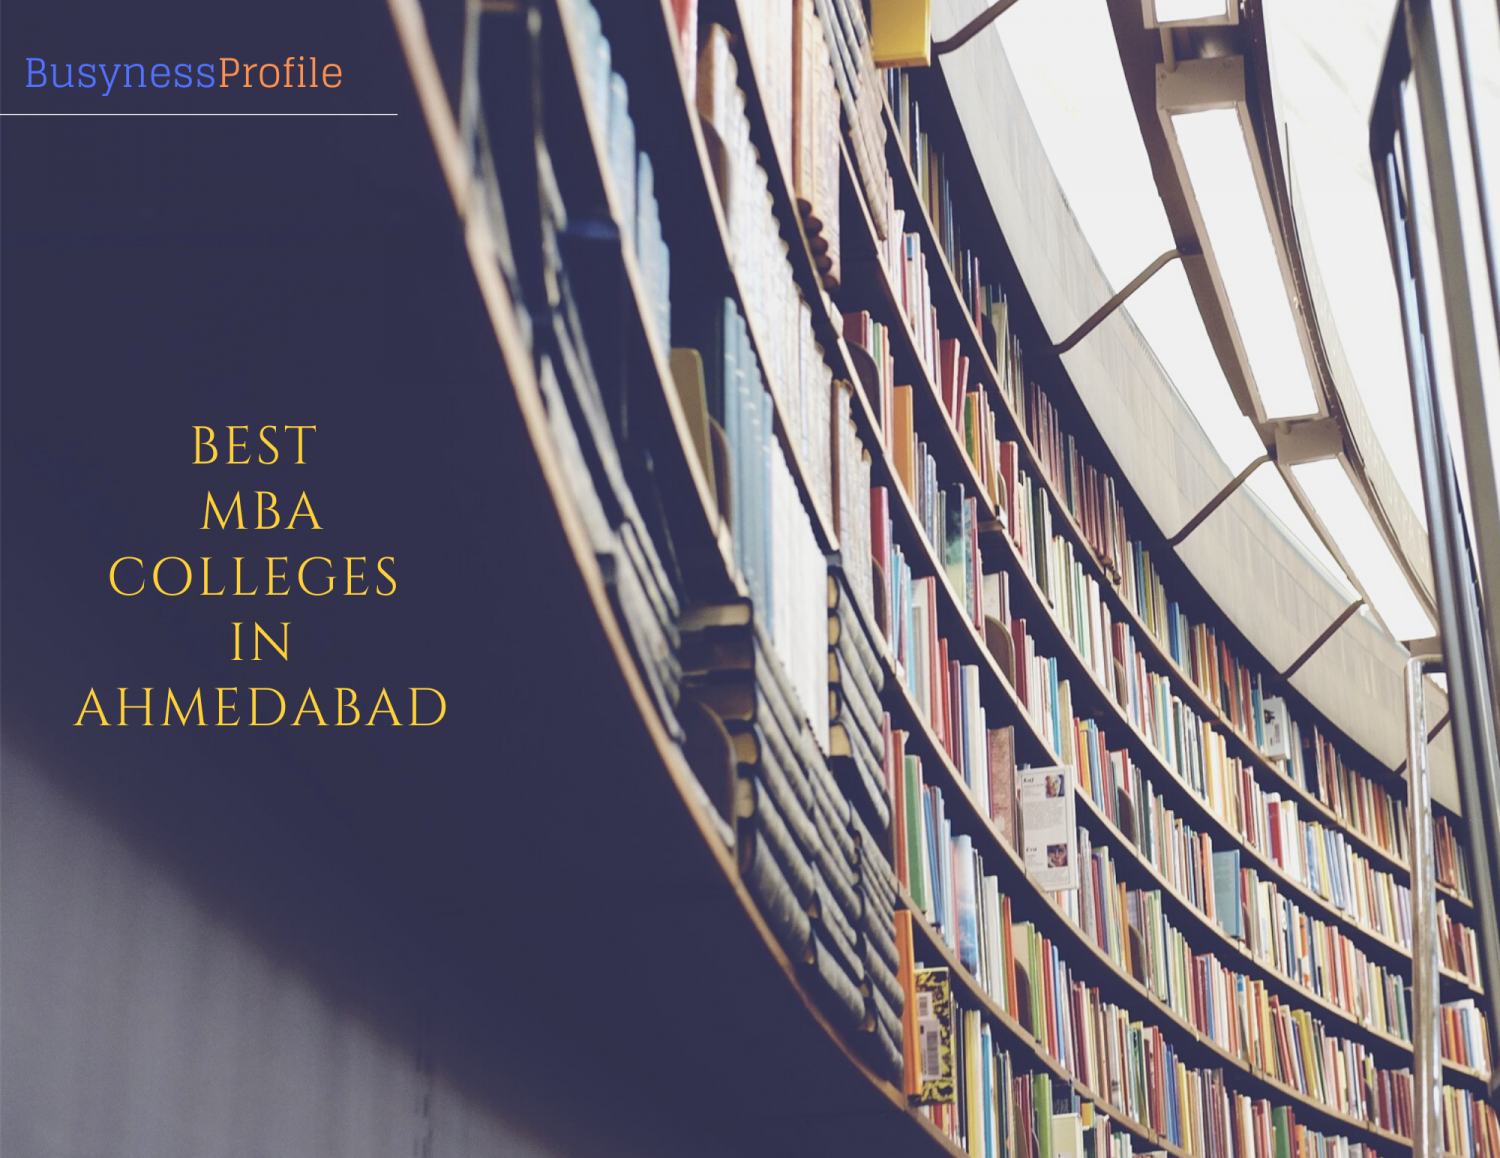 MBA Colleges In Ahmedabad Infographic